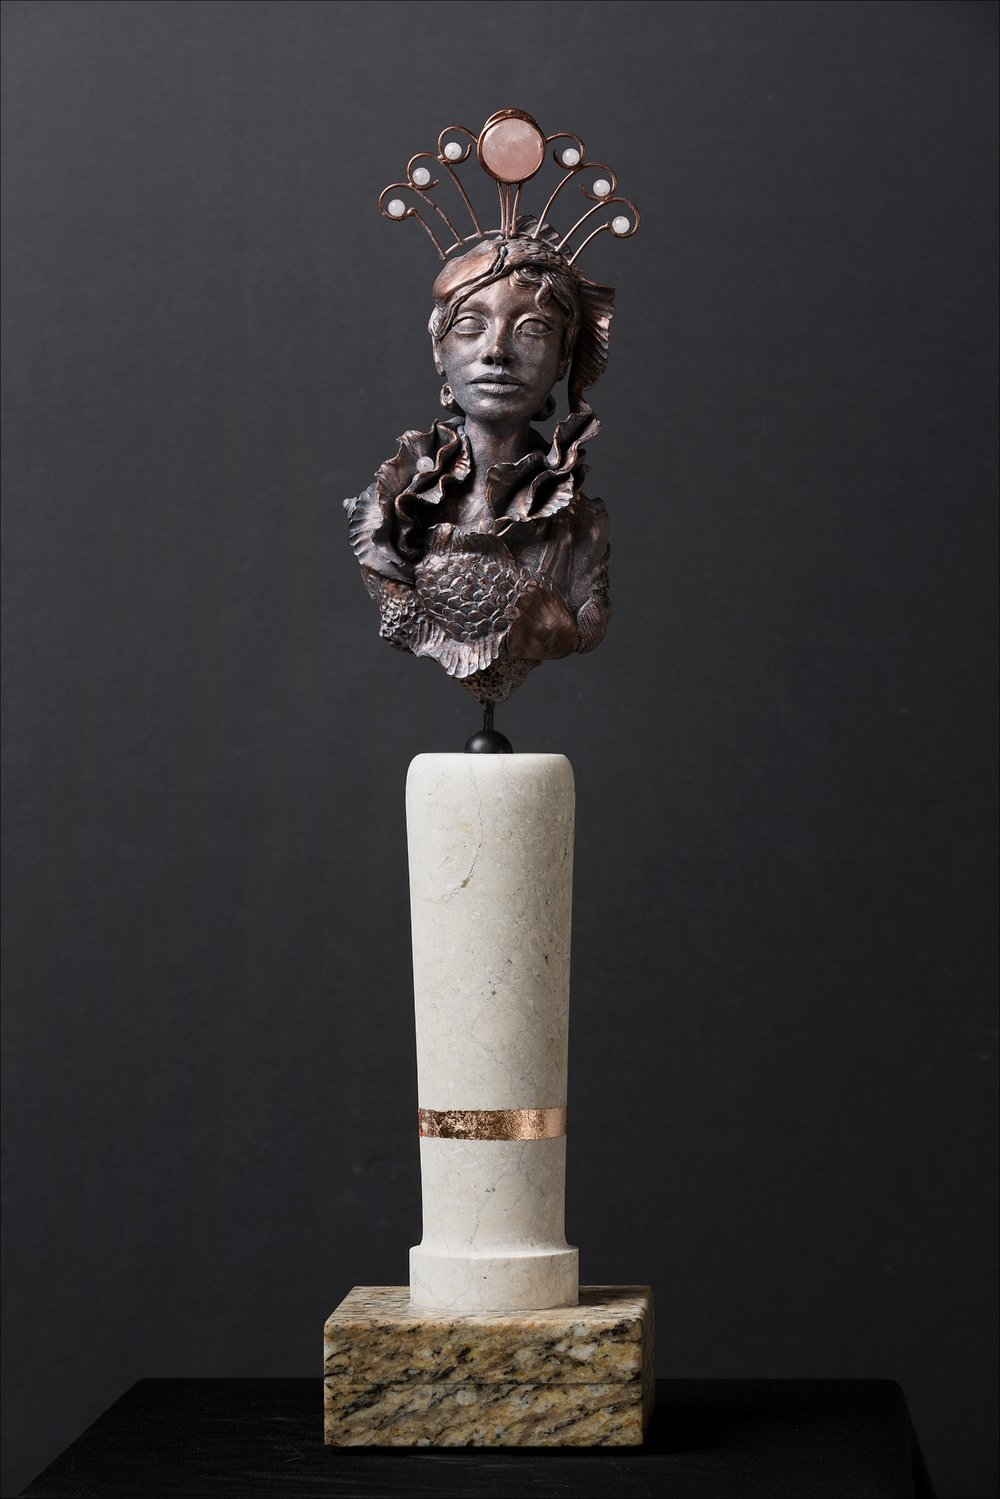 Force of Nature-Balance - She is a Force of nature. Bringing all things back into equilibrium, Balance brings clarity.Polymer clay, epoxy clay, marble, granite, copper, rose quartz20